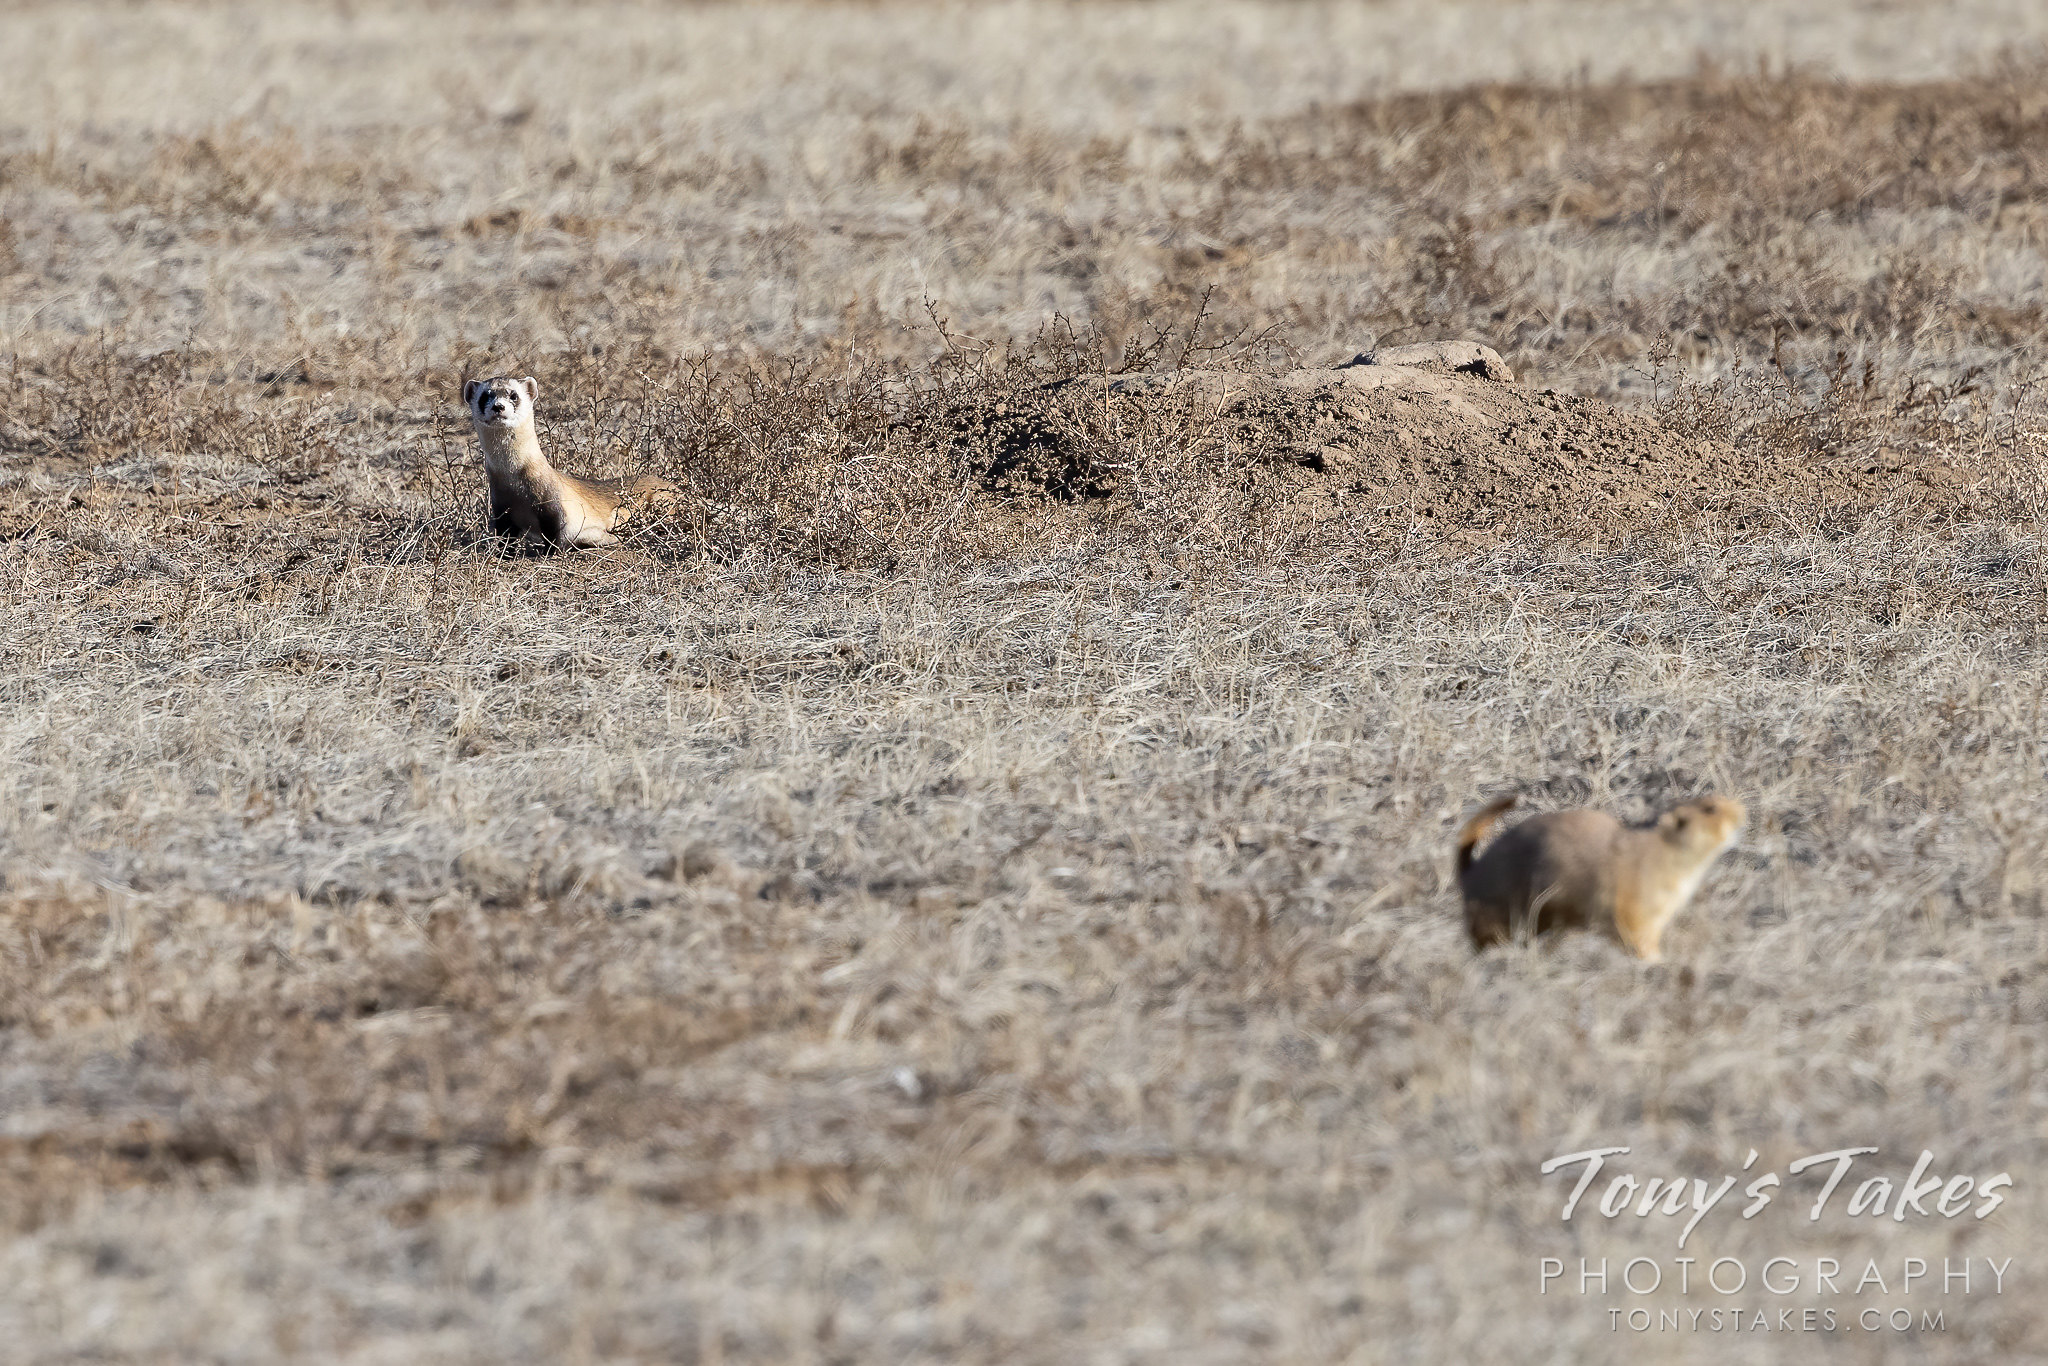 Black-footed ferret sizes up its next meal